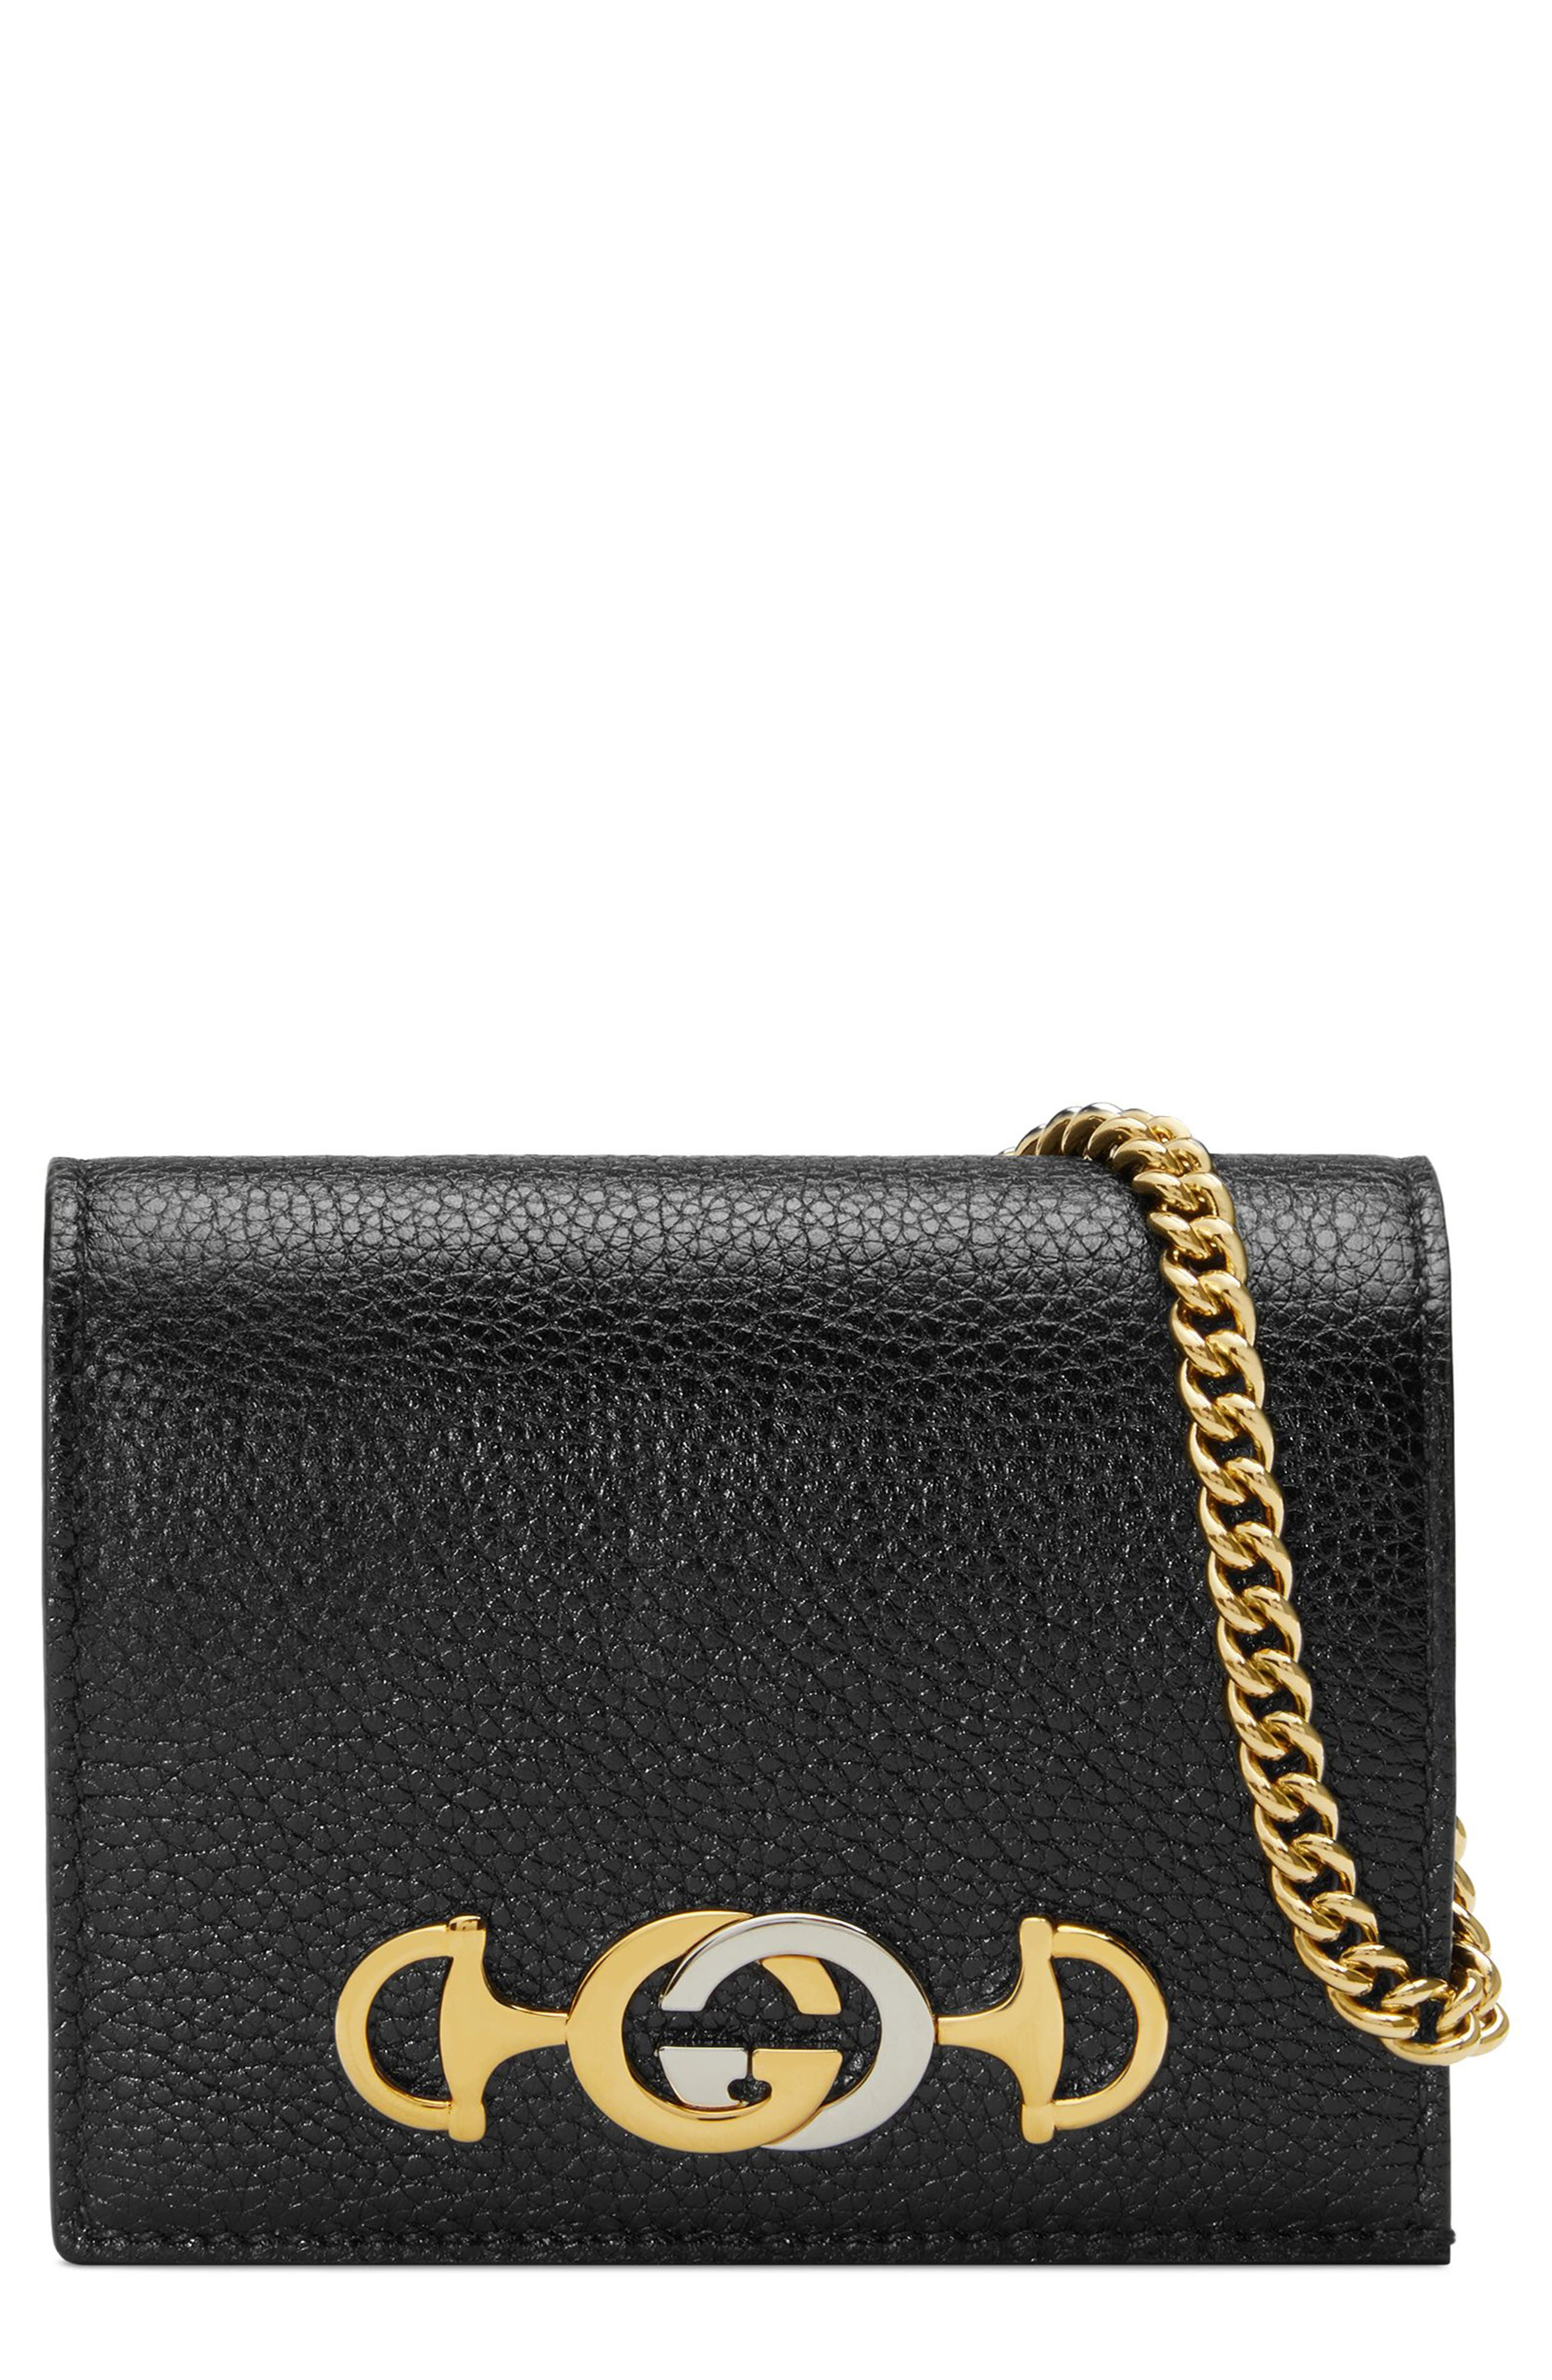 GUCCI, Zumi 655 Leather Wallet on a Chain, Main thumbnail 1, color, BLACK